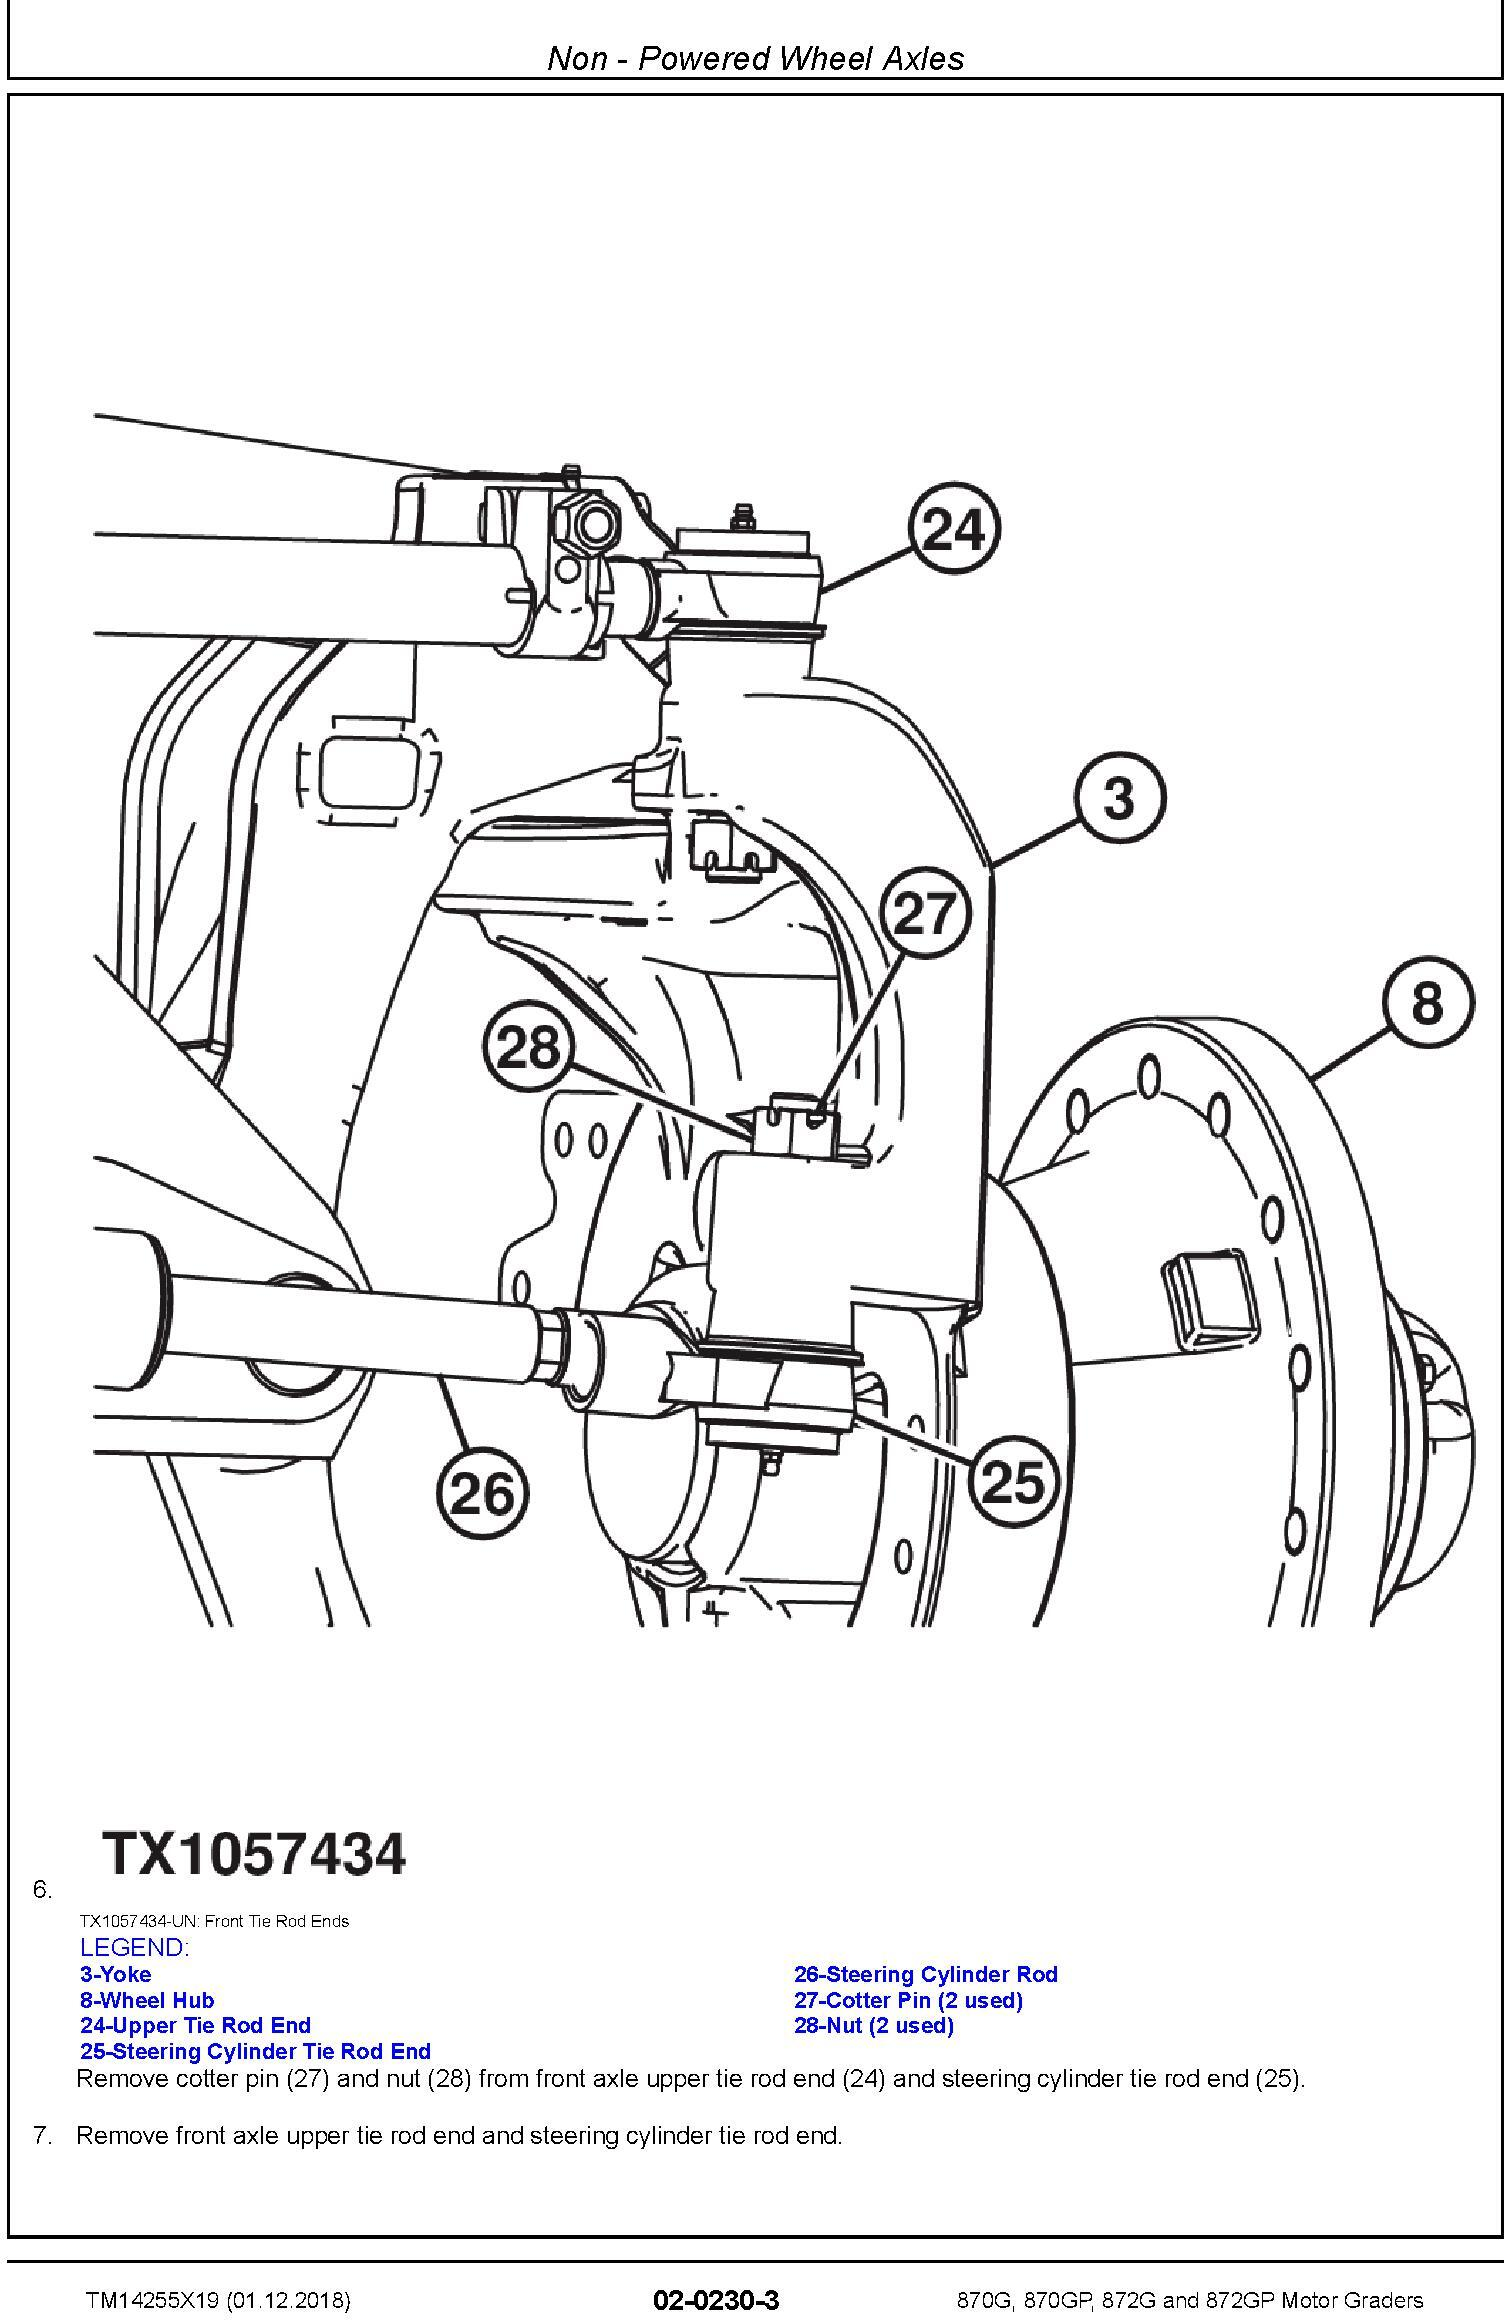 John Deere 870G, 870GP, 872G, 872GP (SN. C680878-,D680878-) Motor Graders Repair Manual (TM14255X19) - 1